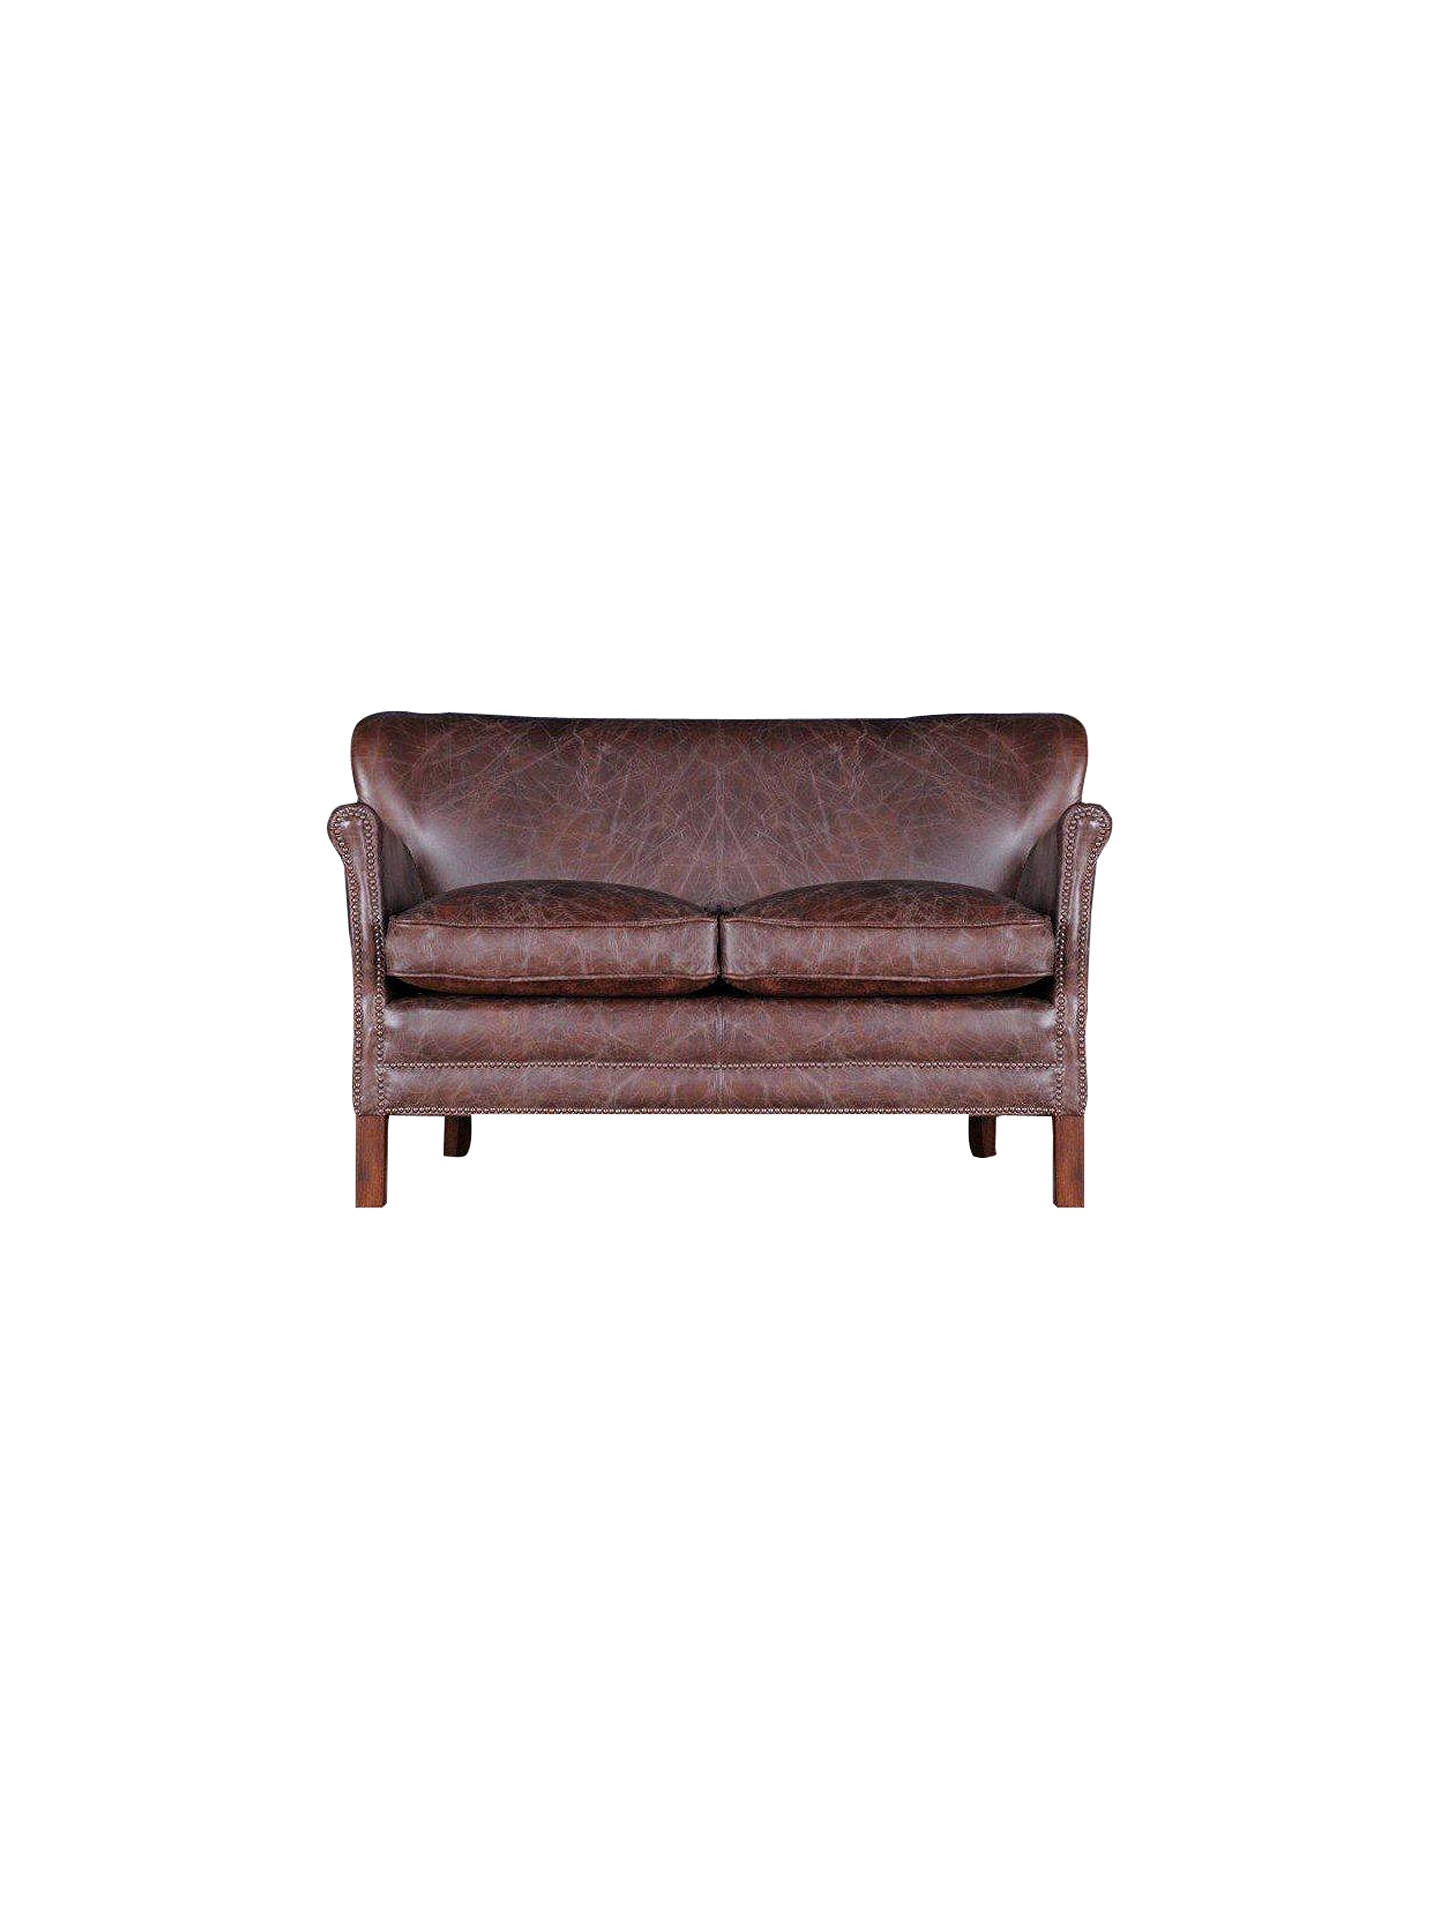 Halo Little Professor Small 2 Seater Leather Sofa Biker Tan Online At Johnlewis